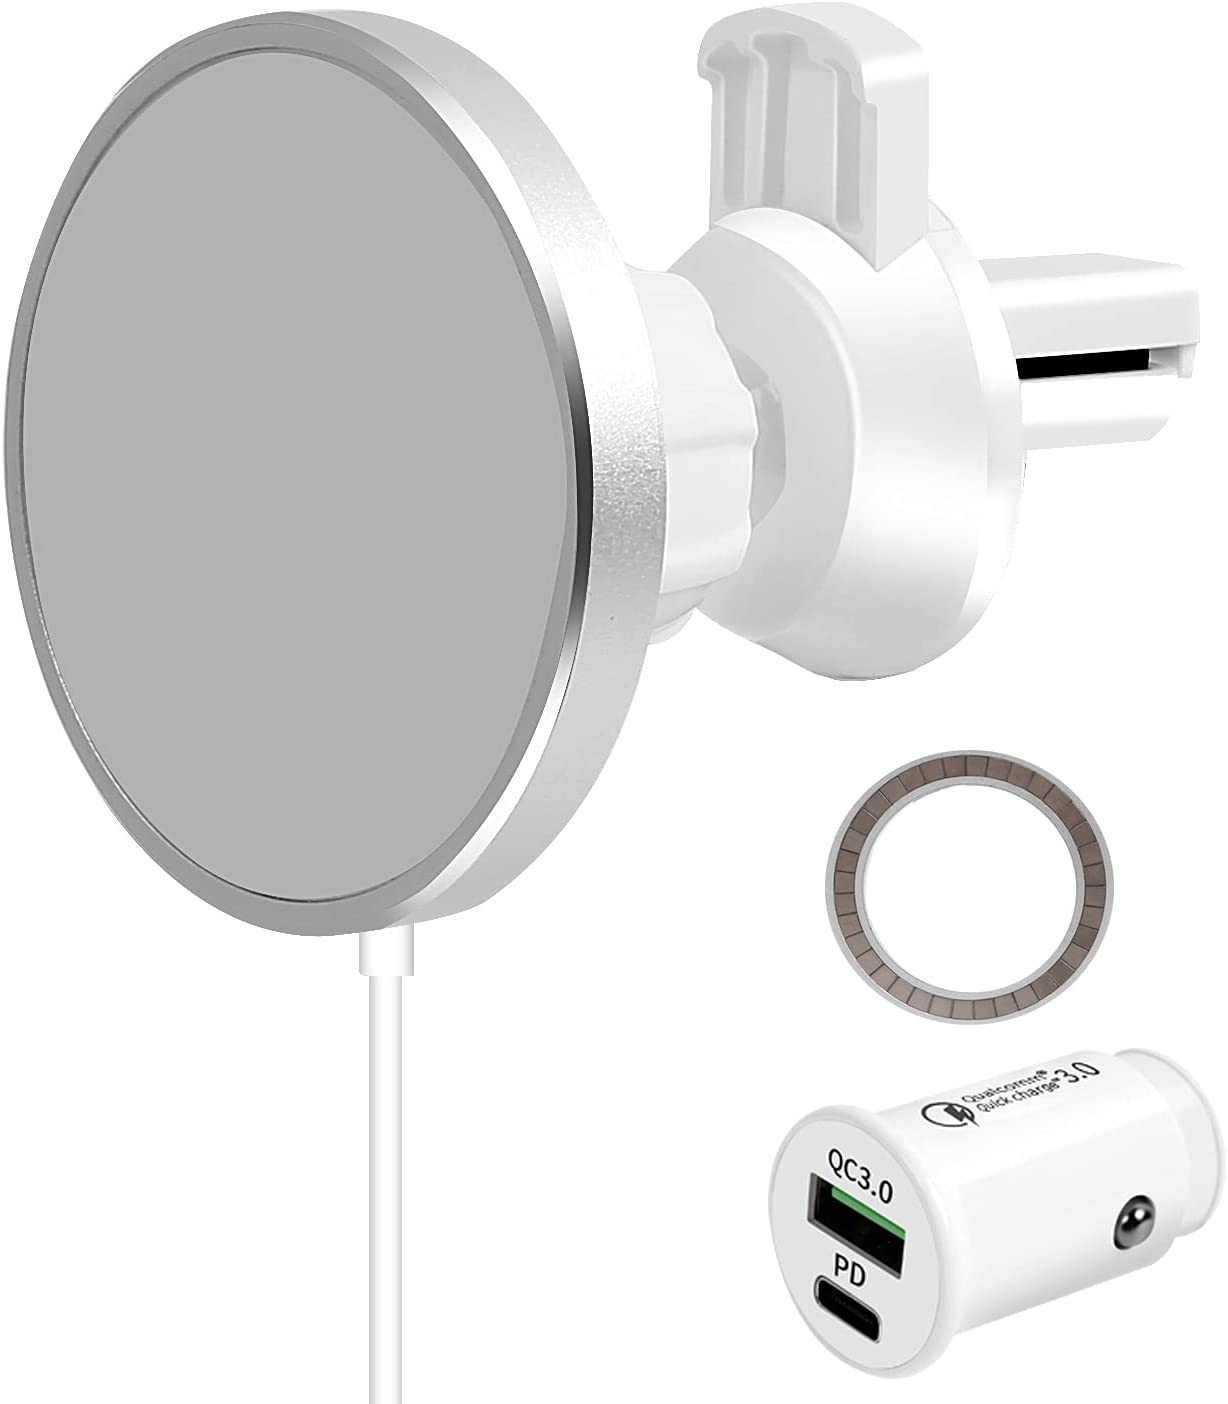 Marchero Magnetic Wireless Car Charger,Cell Phone Mount Air Vent Fast Charging for iPhone 13/12 Pro/Max/SE and Apple MagSafe Case[20W PD&QC 3.0 Car Charger Included]